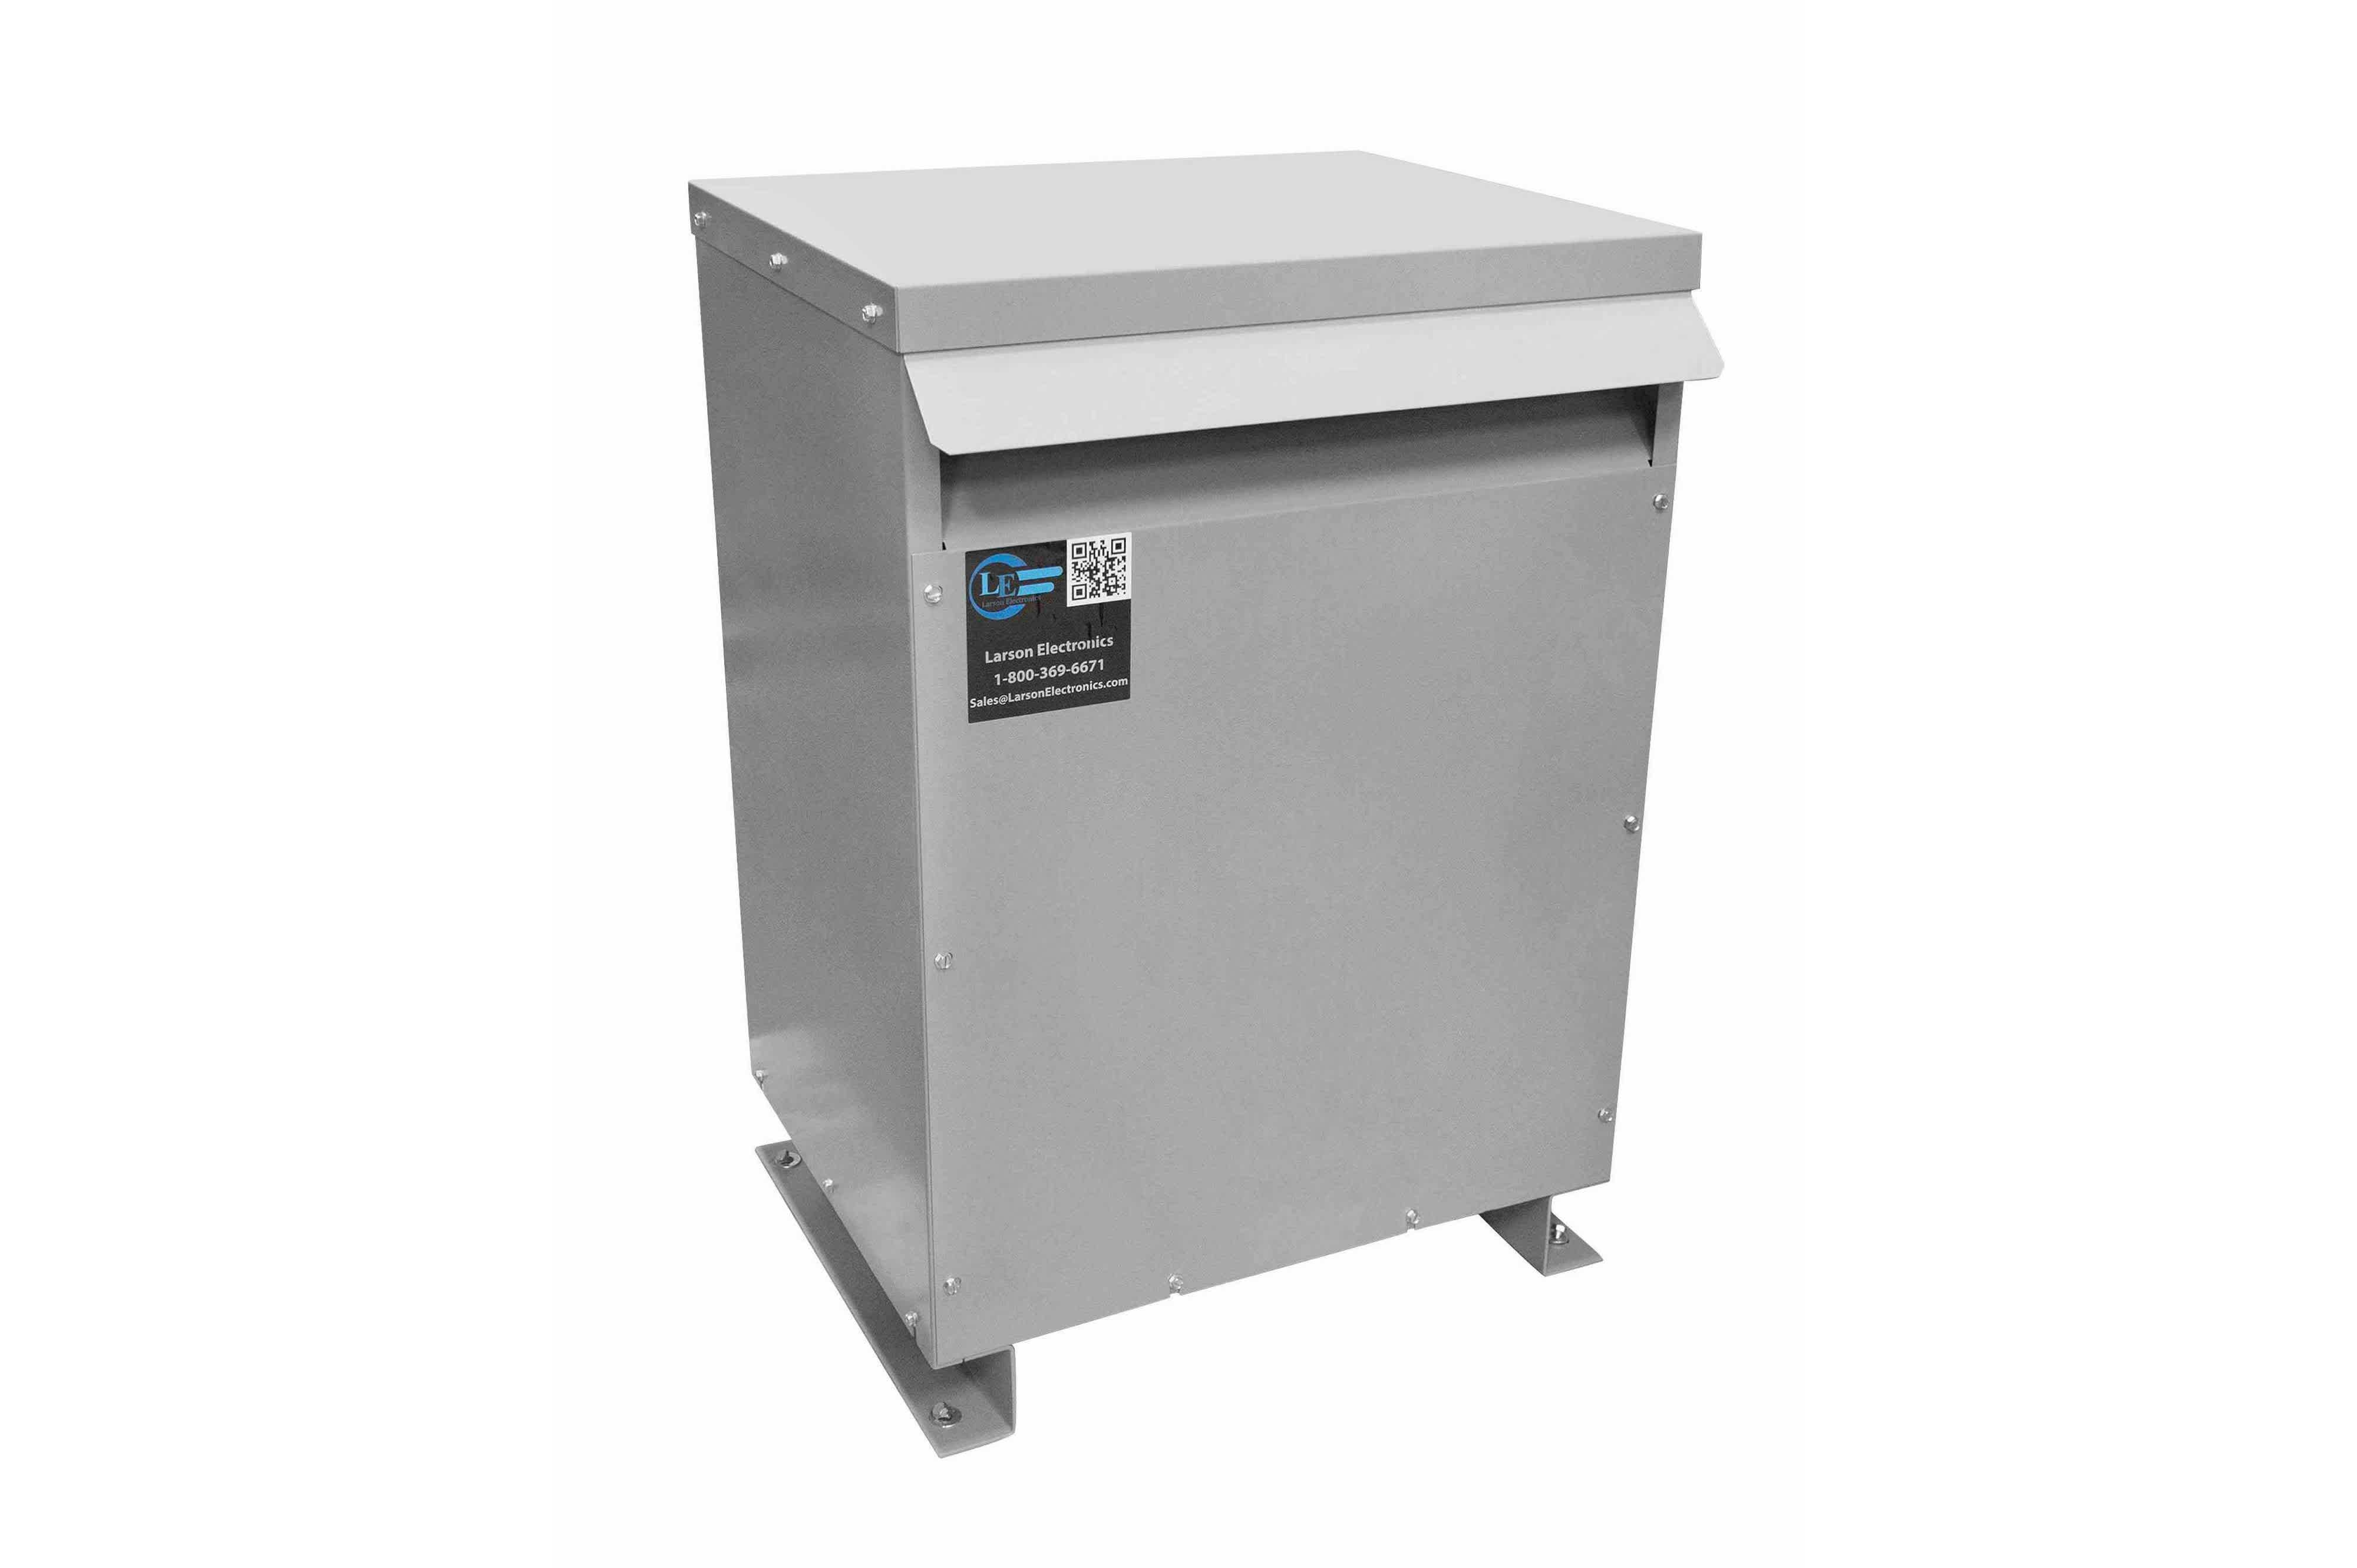 9 kVA 3PH Isolation Transformer, 600V Wye Primary, 380Y/220 Wye-N Secondary, N3R, Ventilated, 60 Hz